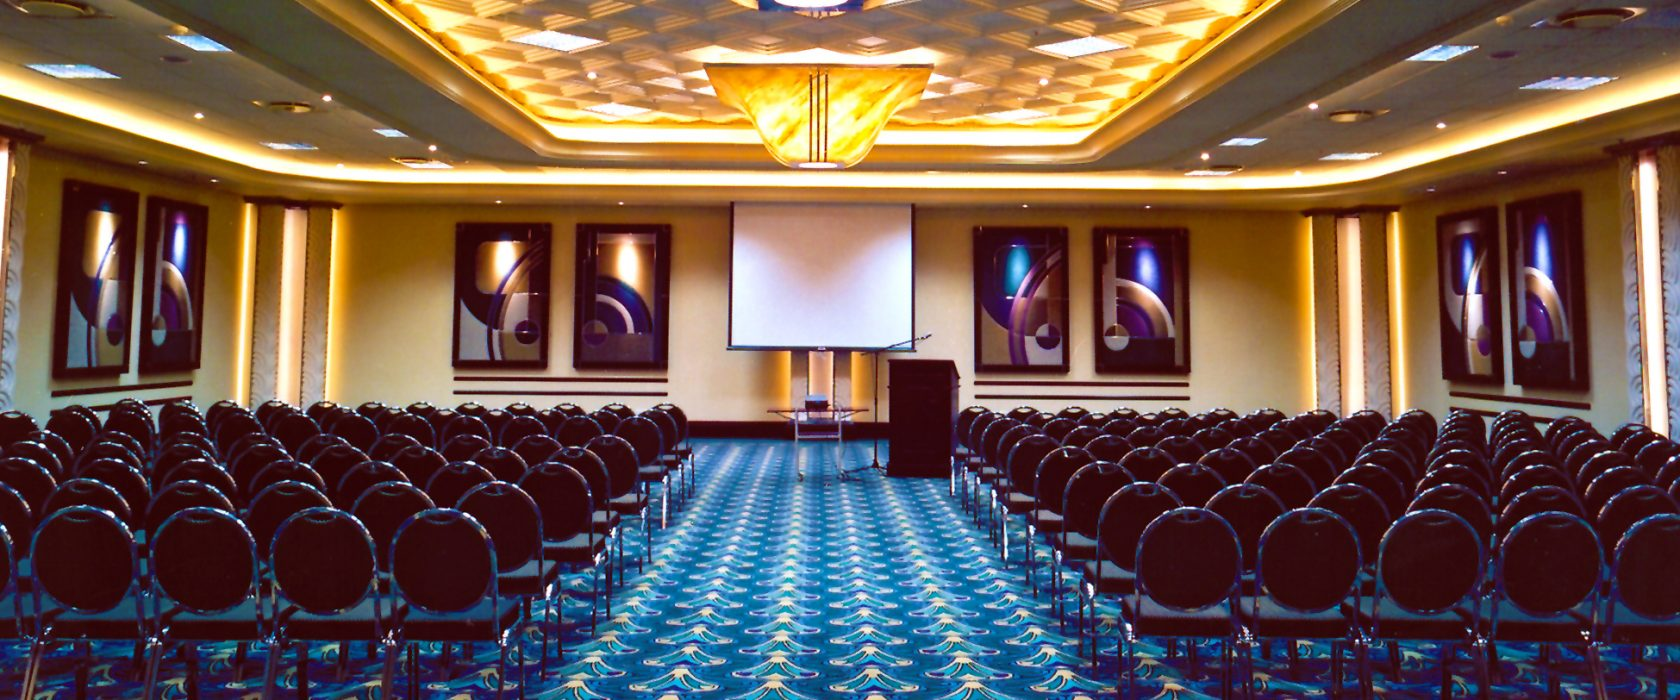 Suncoast Conference centre Seating Layout